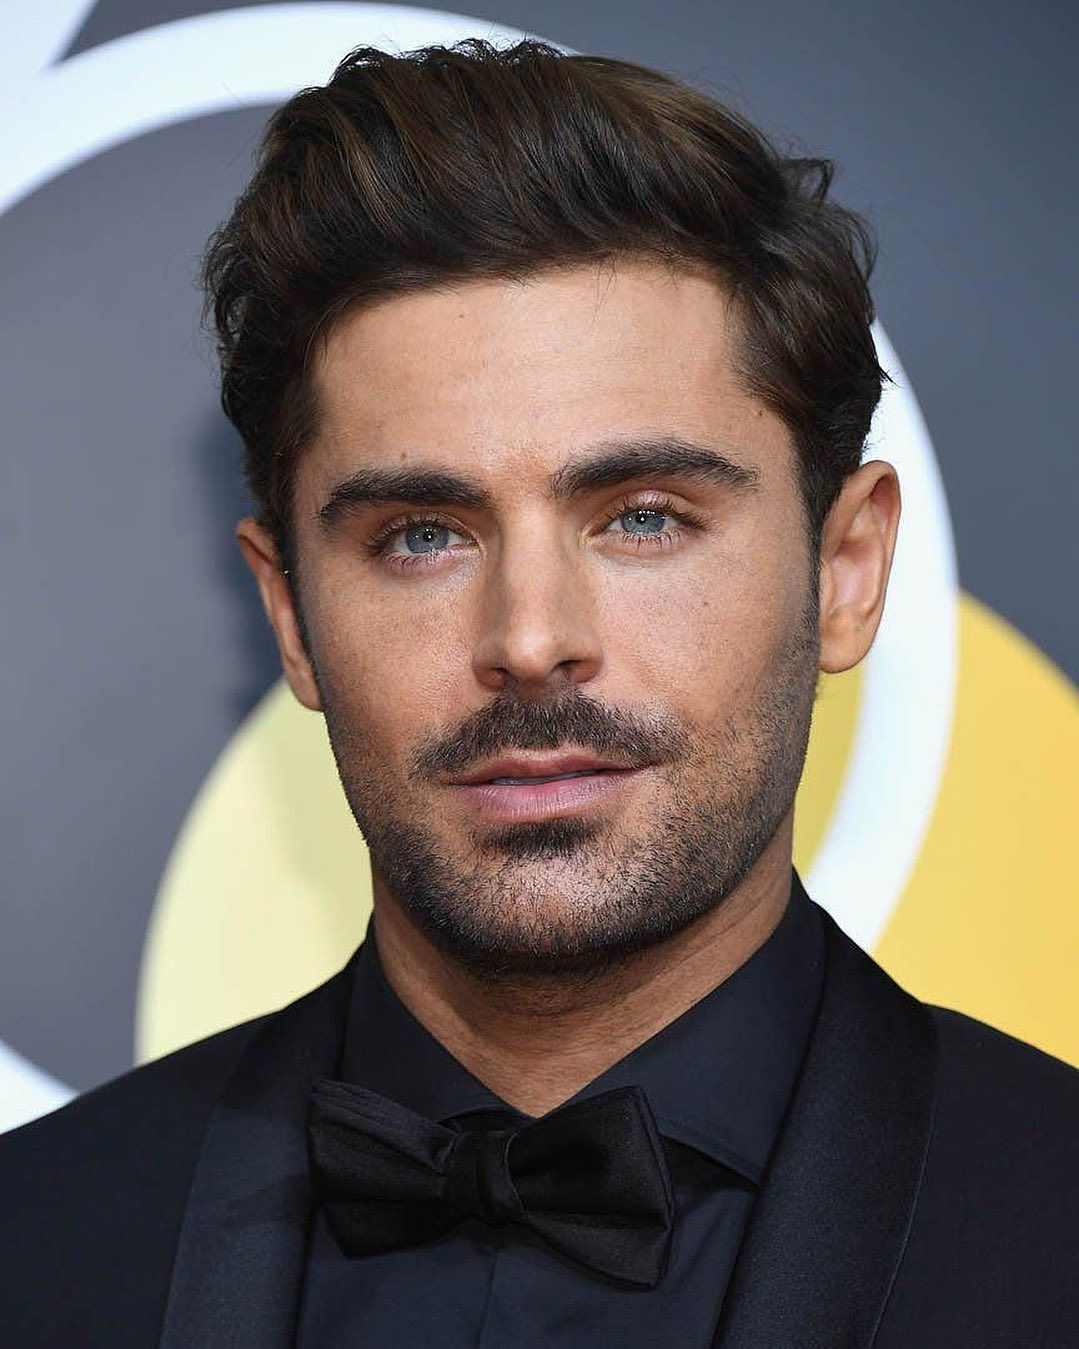 Thoughts On This Look Coiffure Zac Efron Coiffure Homme Court Coiffures Masculines